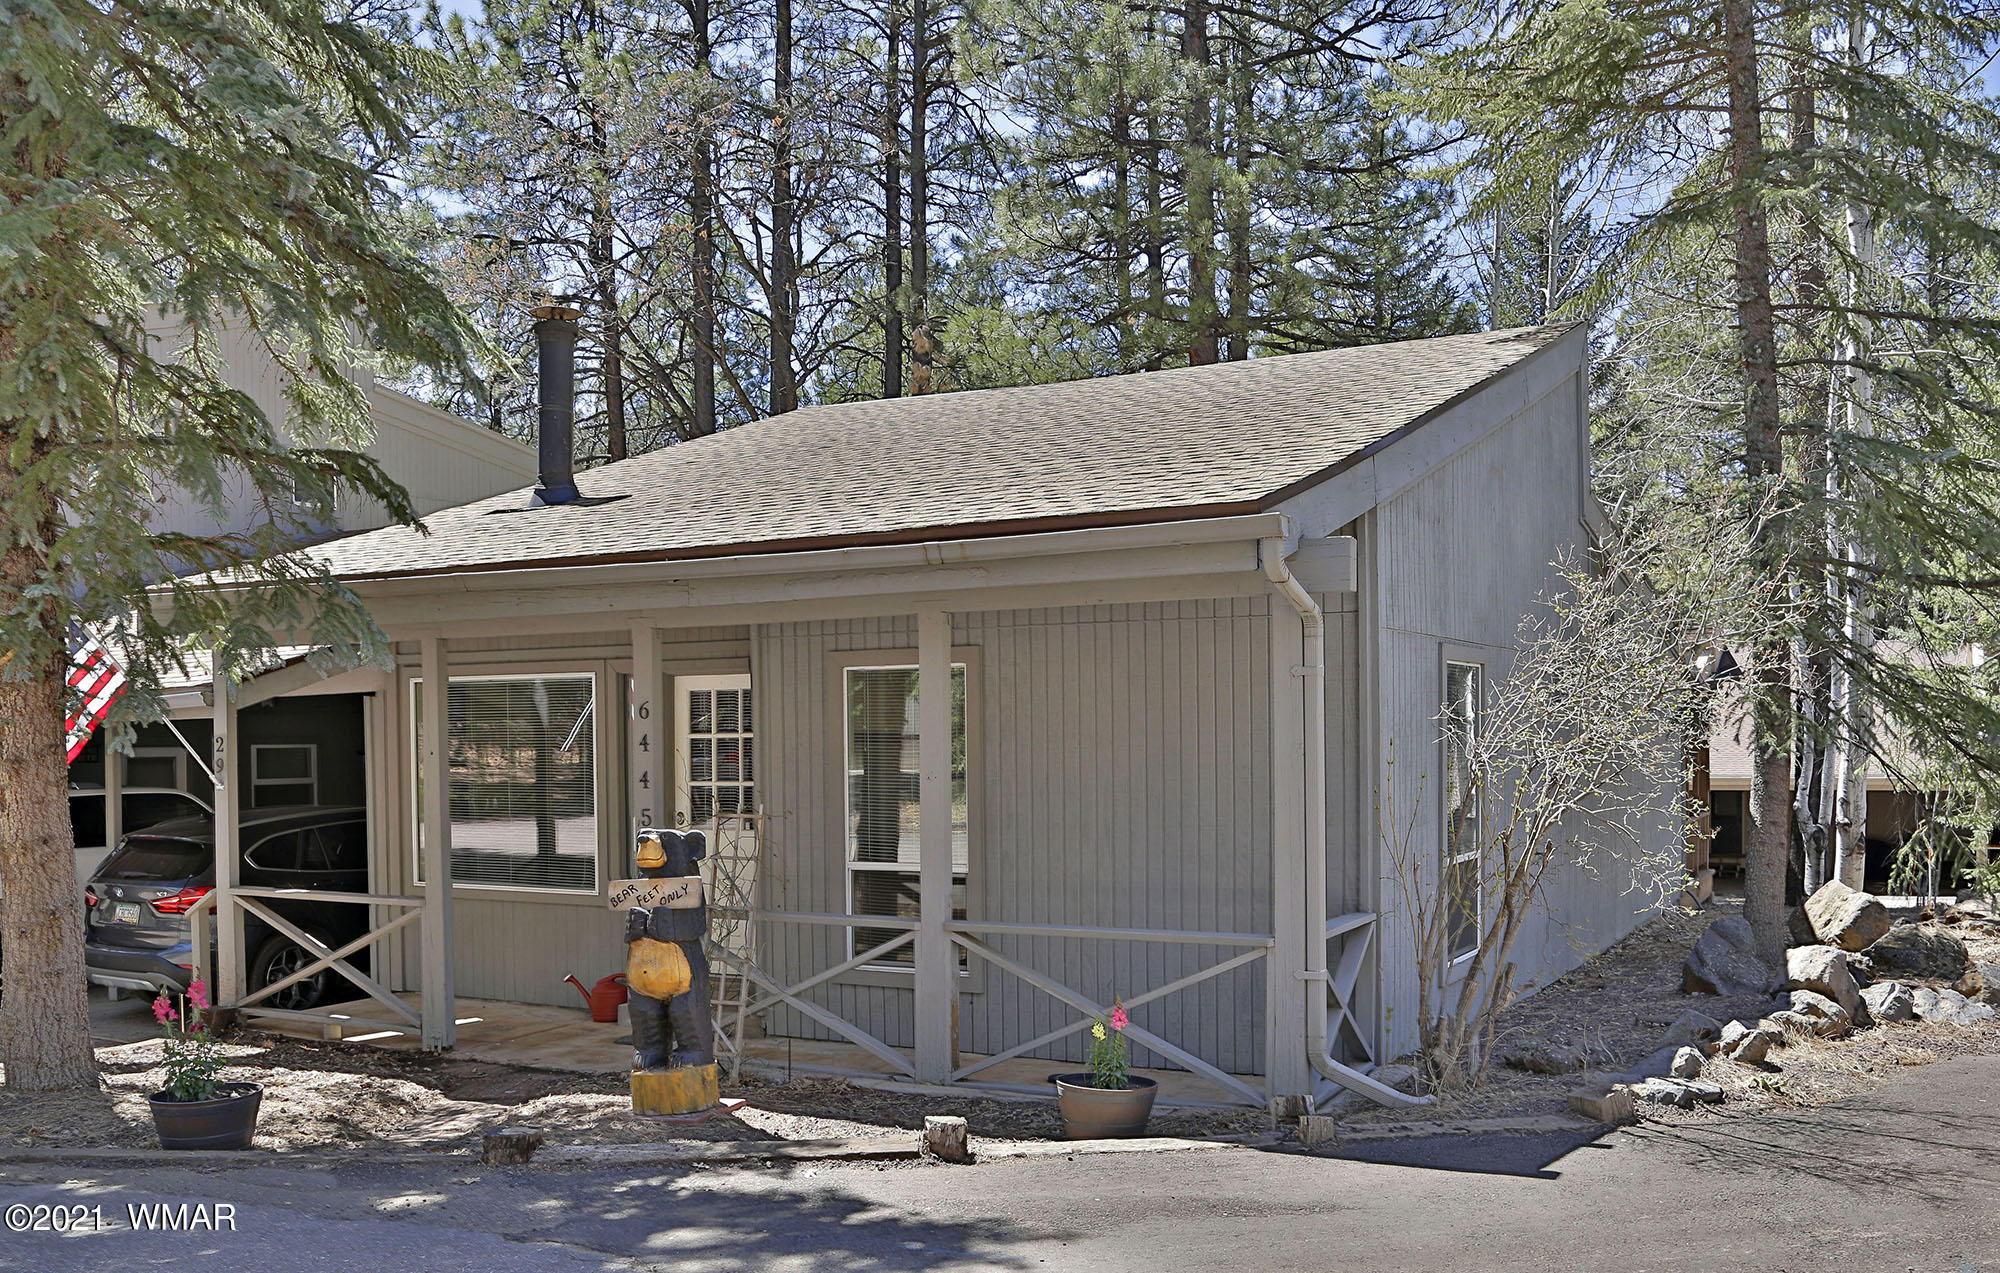 Great location across the street from the Pinetop Country Club clubhouse.  Completely remodeled to include granite countertops, shaker style soft-close cabinetry, new flooring throughout, new plumbing and electrical fixtures, beautiful tile work in baths and an adorable kids loft.  The redwood deck is partially covered and provides the perfect outdoor living area.  A small terraced garden has an irrigation system in place.  A Steffes ETS heater and pellet stove will take the chill off those cool mornings.  Close to great hiking trails and all the outdoor activities the White Mountains are known for.  Rentals can only be for 1 to 3 months.